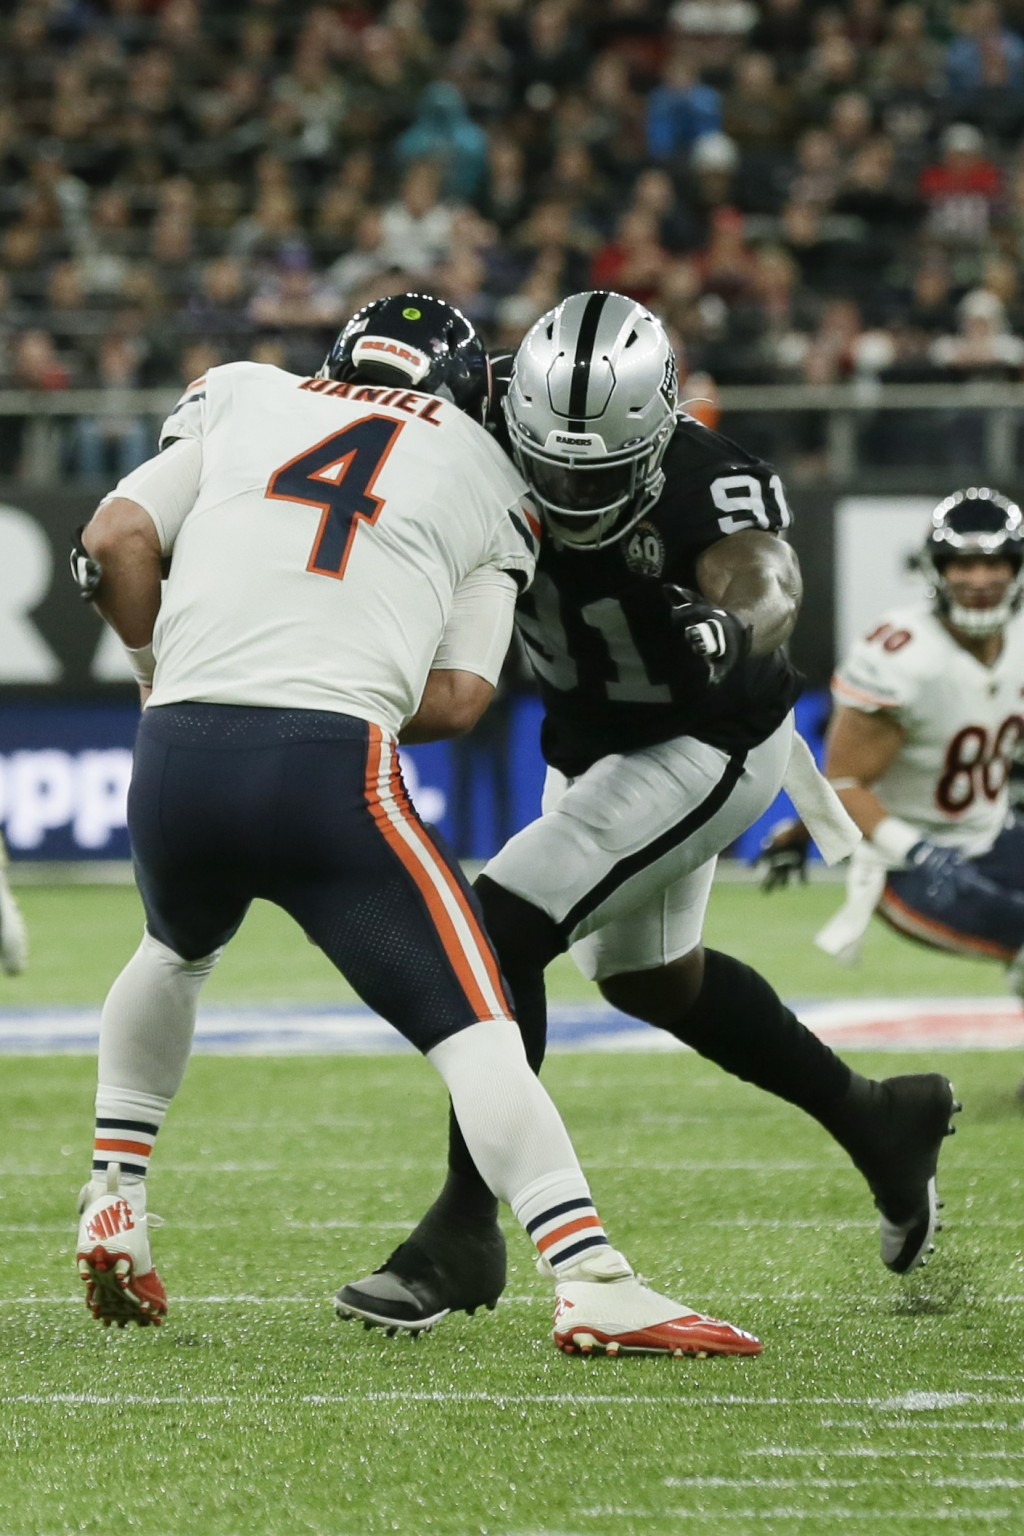 Chicago Bears quarterback Chase Daniel (4) is sacked by Oakland Raiders defensive end Benson Mayowa (91) during the first half of an NFL football game...